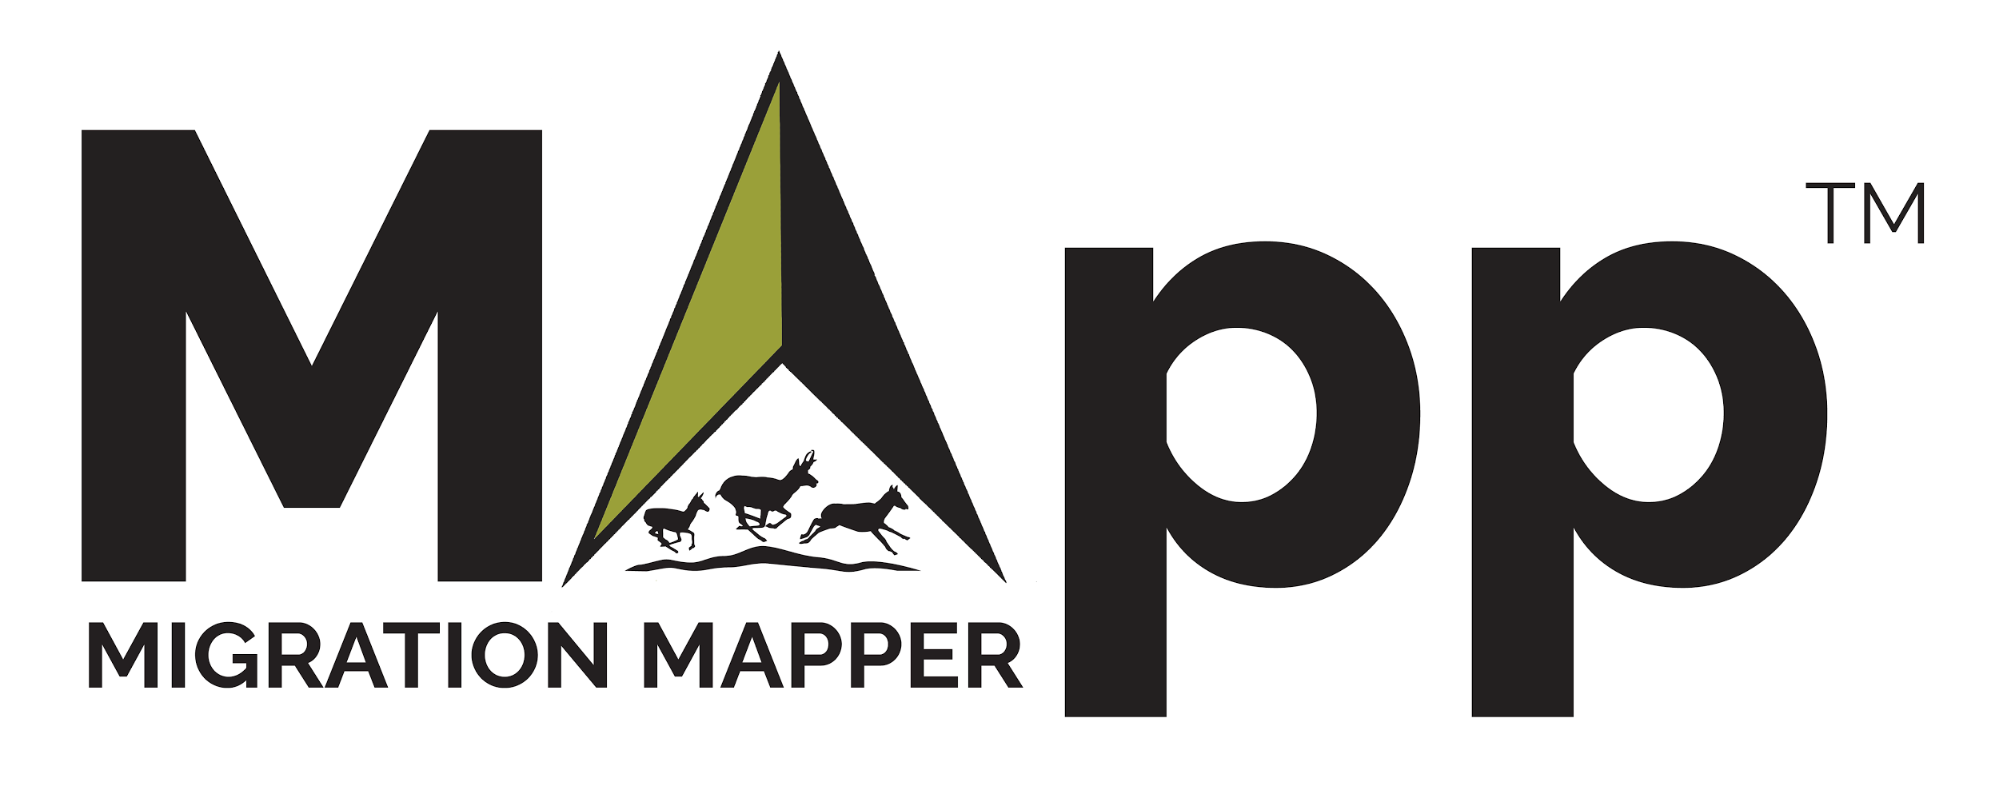 MigrationMapper_logo_whitebg.png